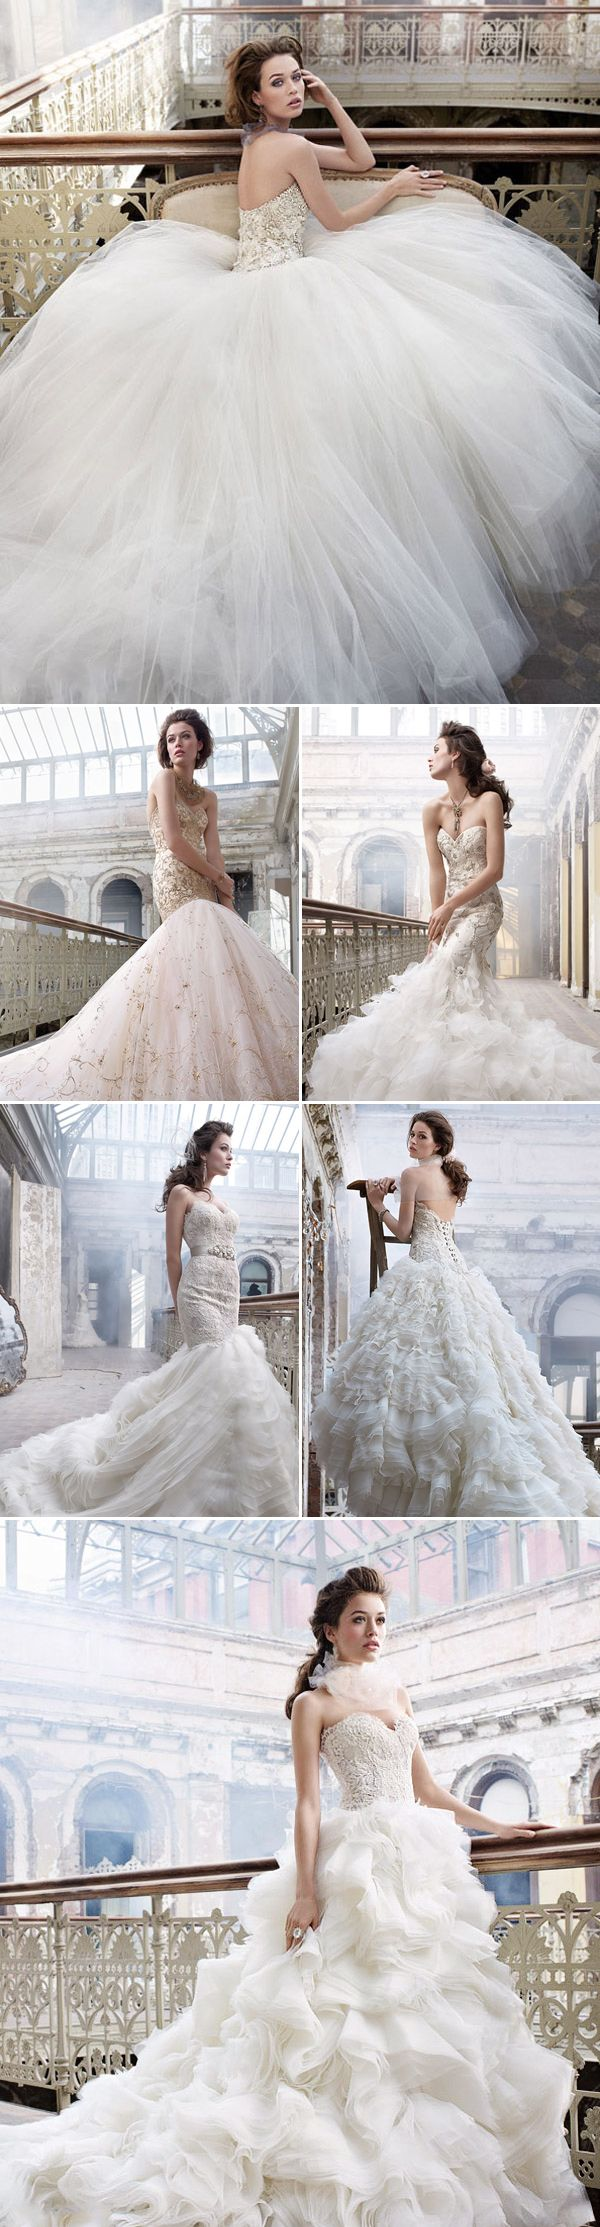 39 Classic Princess Wedding Dresses - Praise Wedding